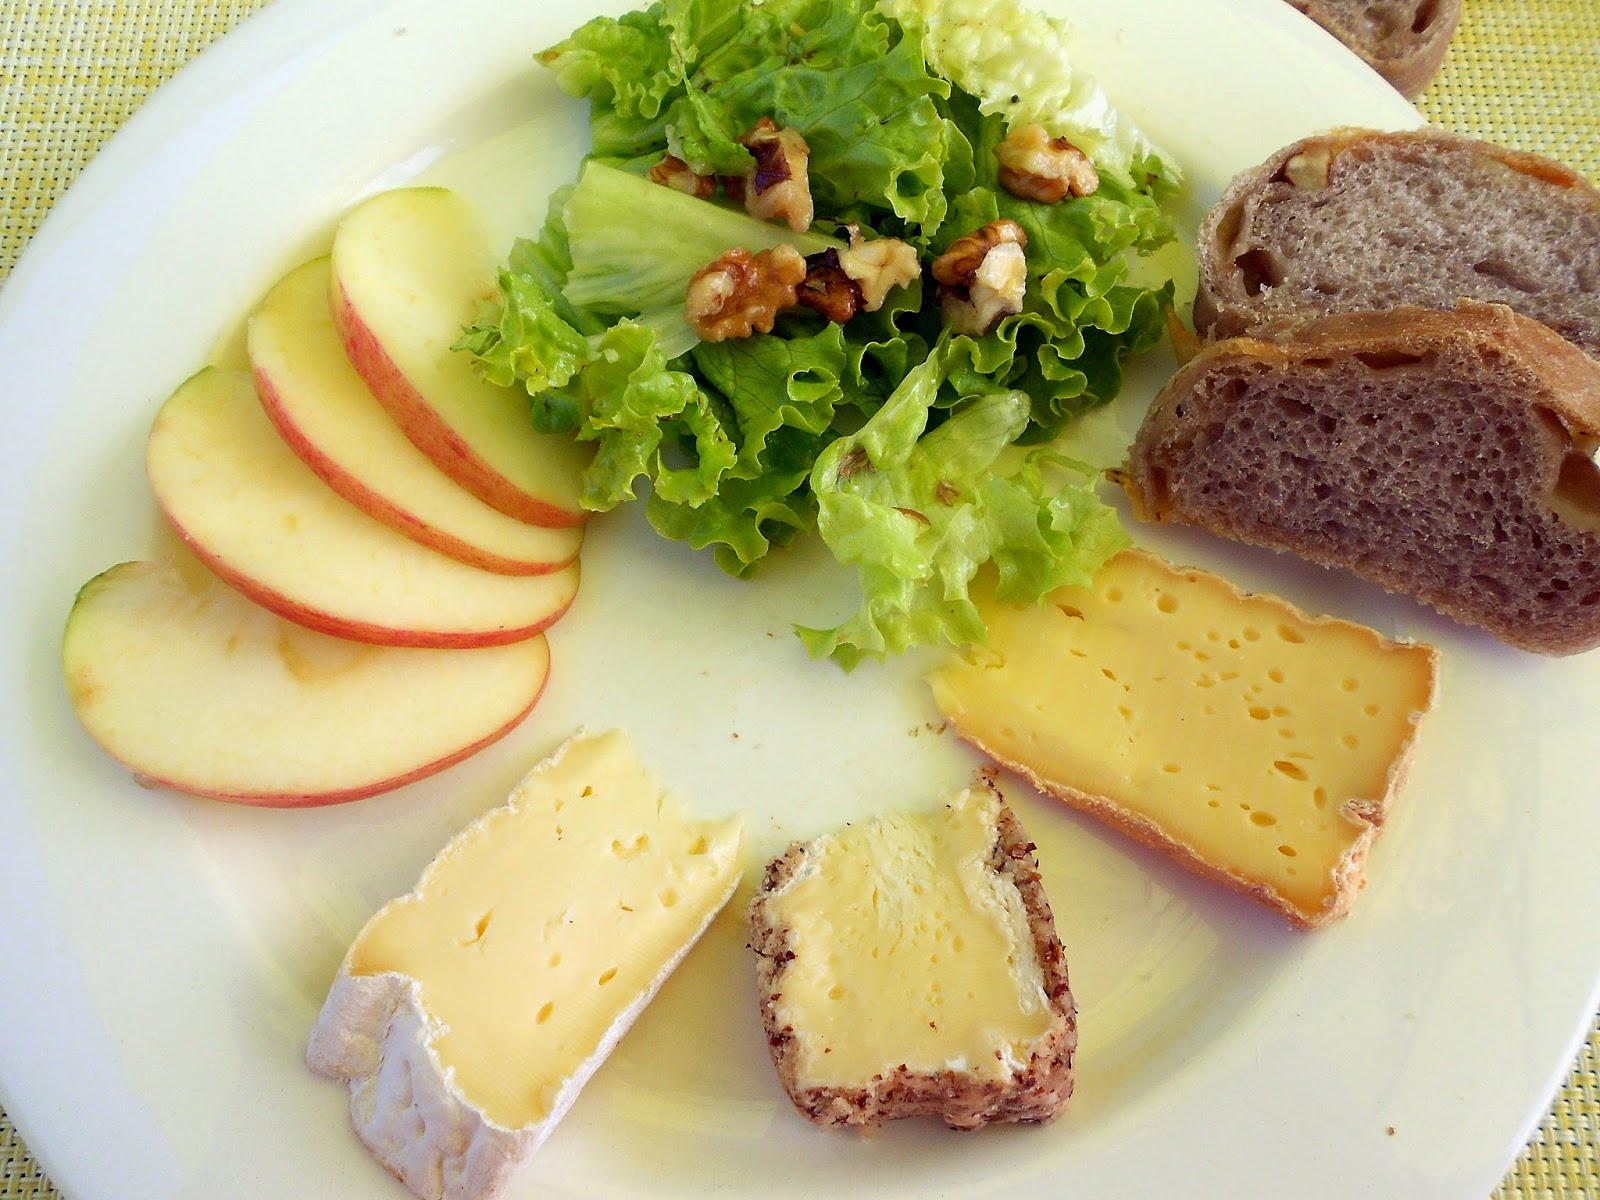 Dey cuisine atelier normand 4 repas fromage son pain for Accompagnement cuisine